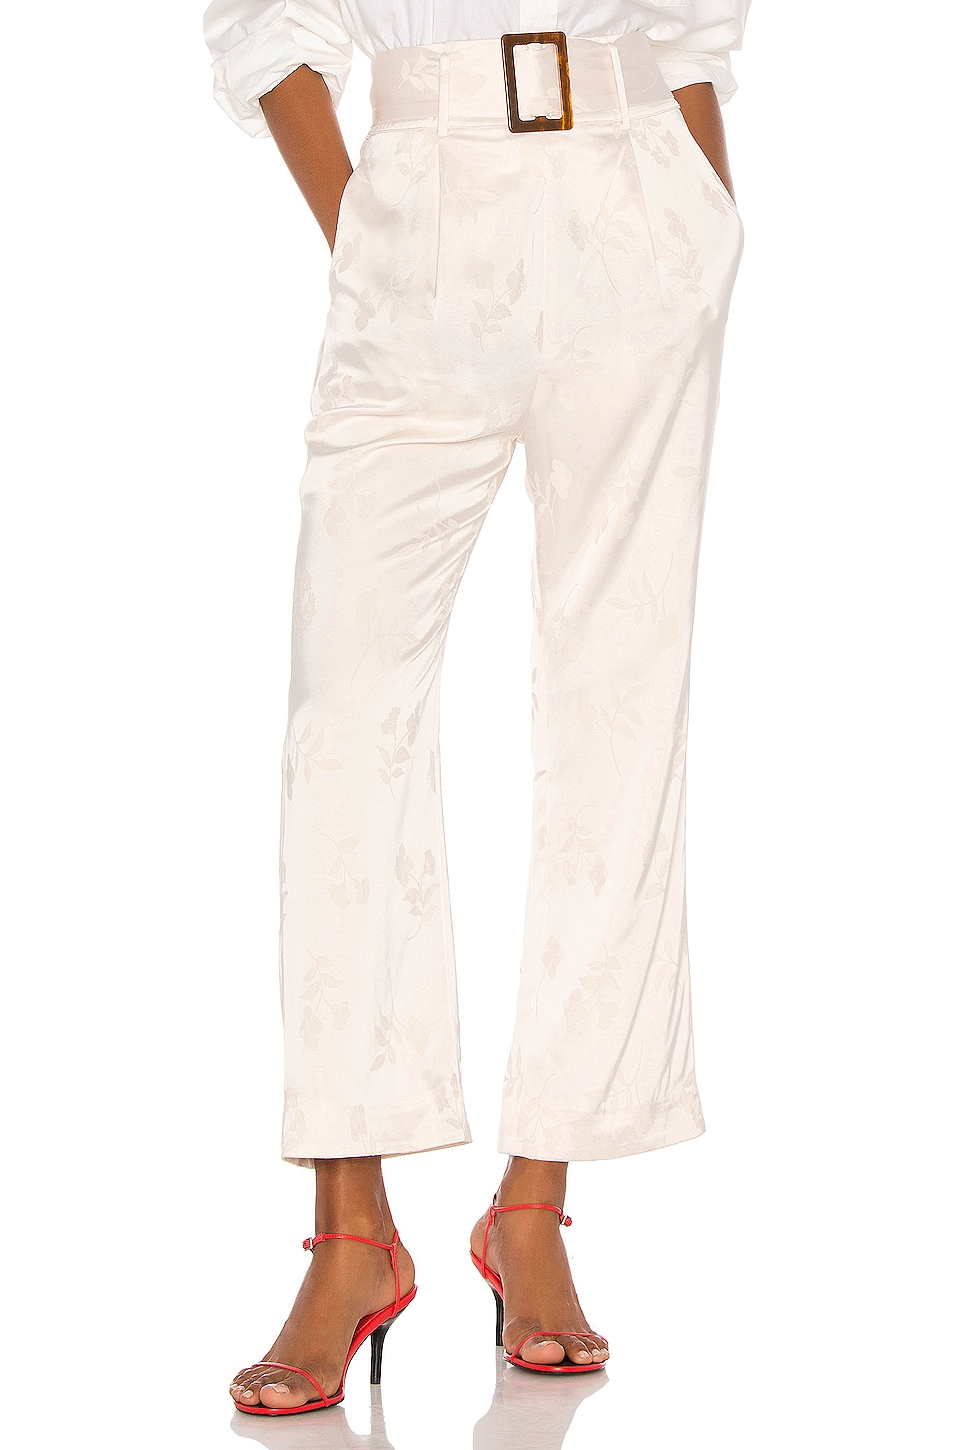 Song of Style Vance Pant in Pearl White